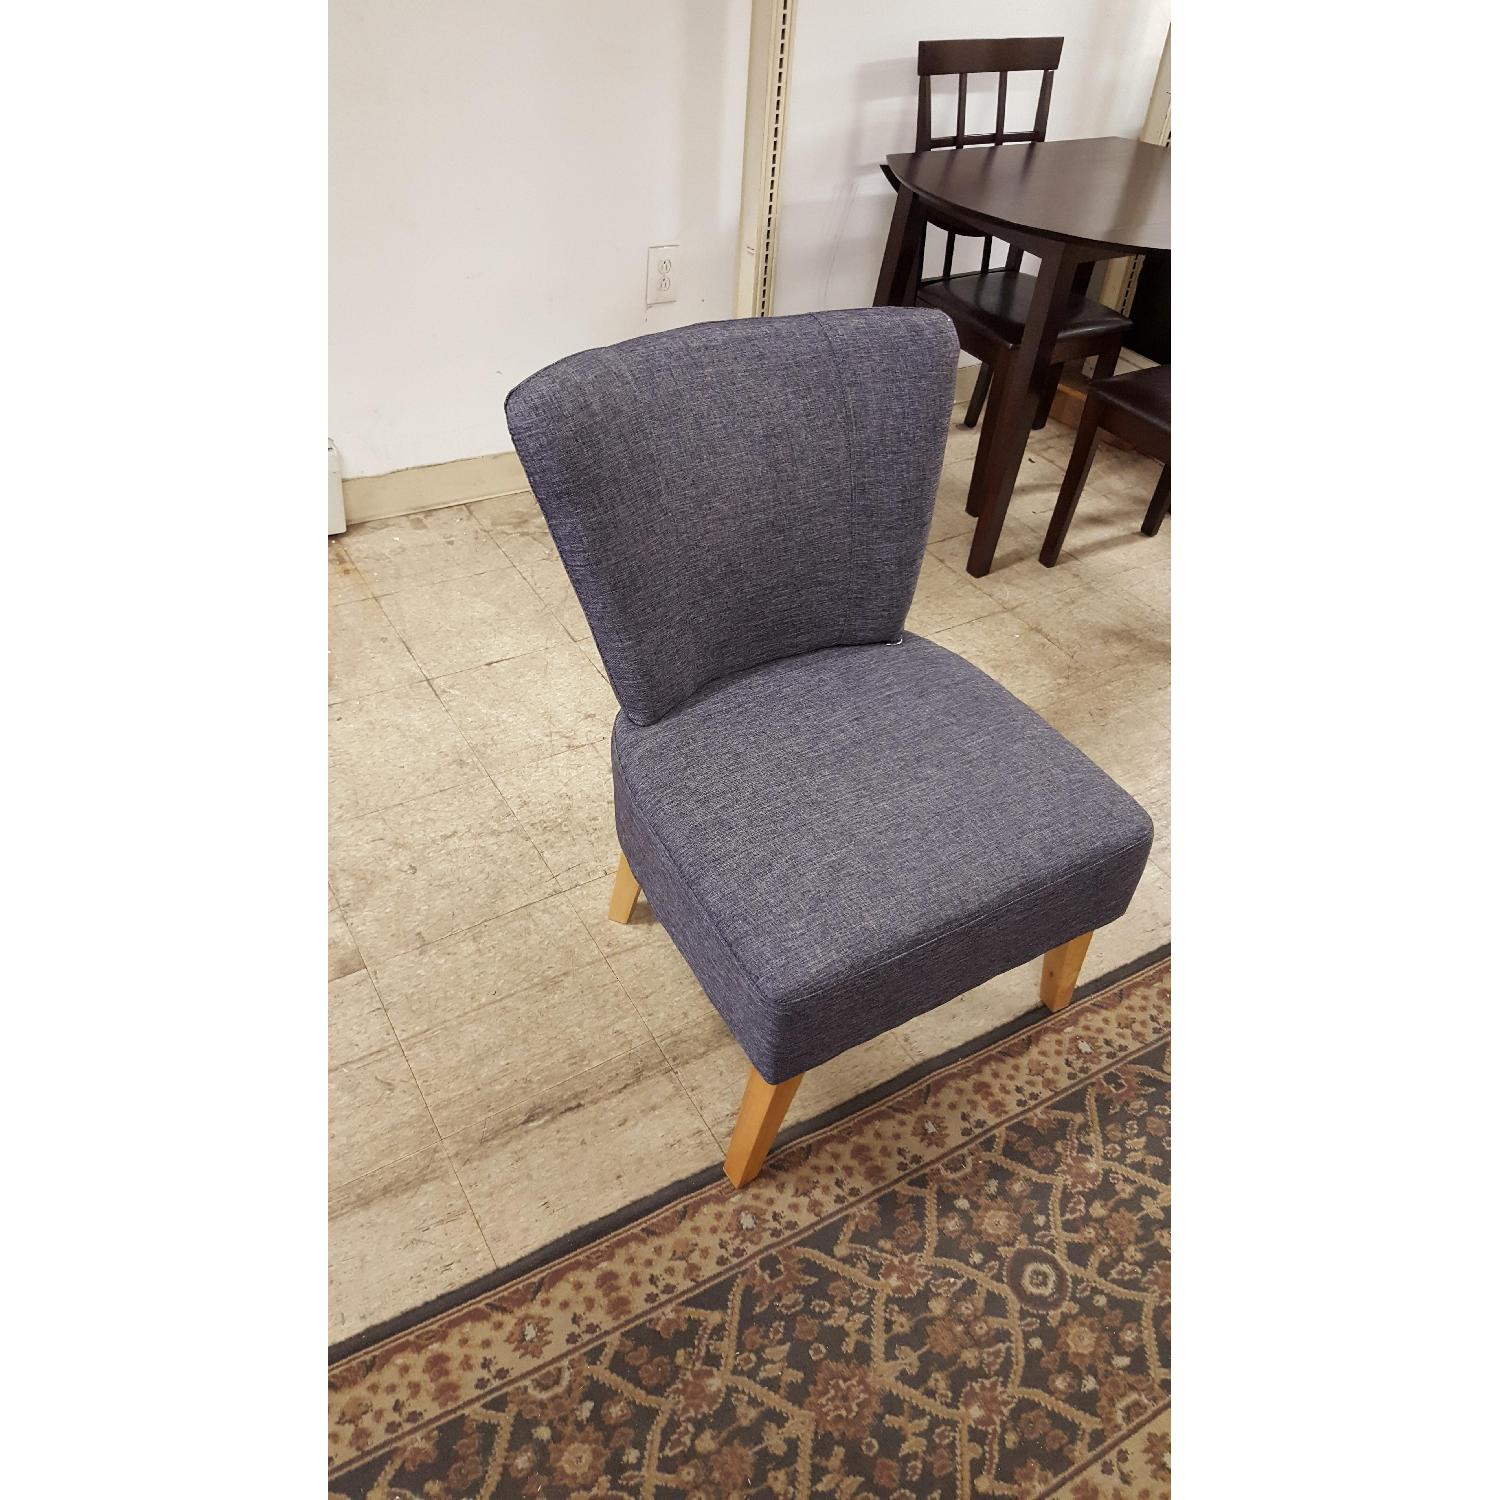 Sauder Gray Accent Chair - image-1